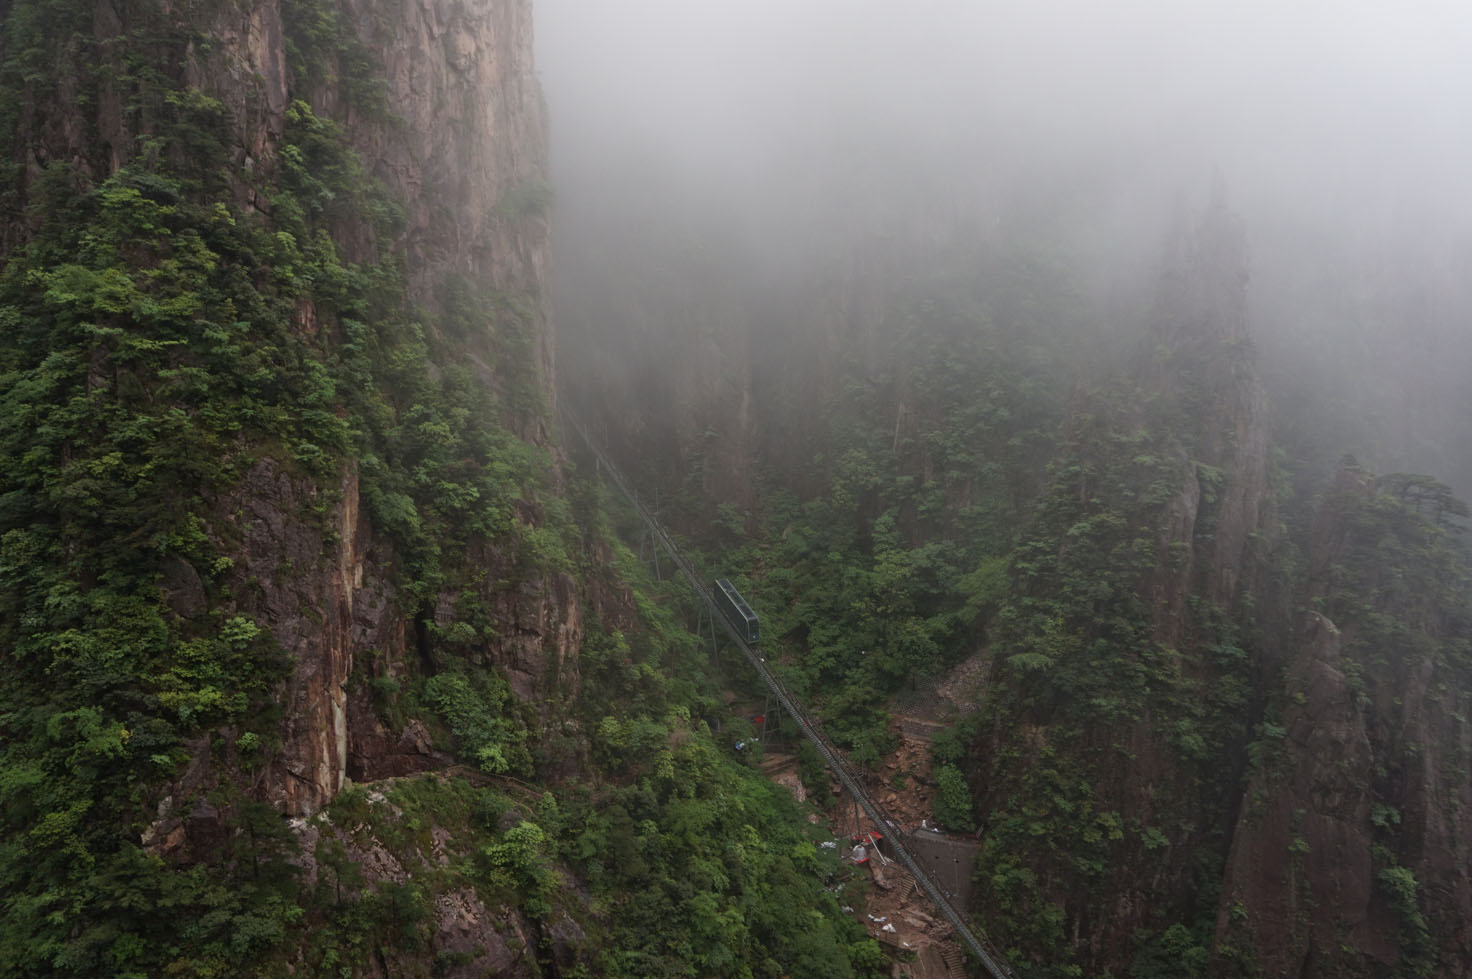 Zipline cable car in the middle of the Huangshan mountain